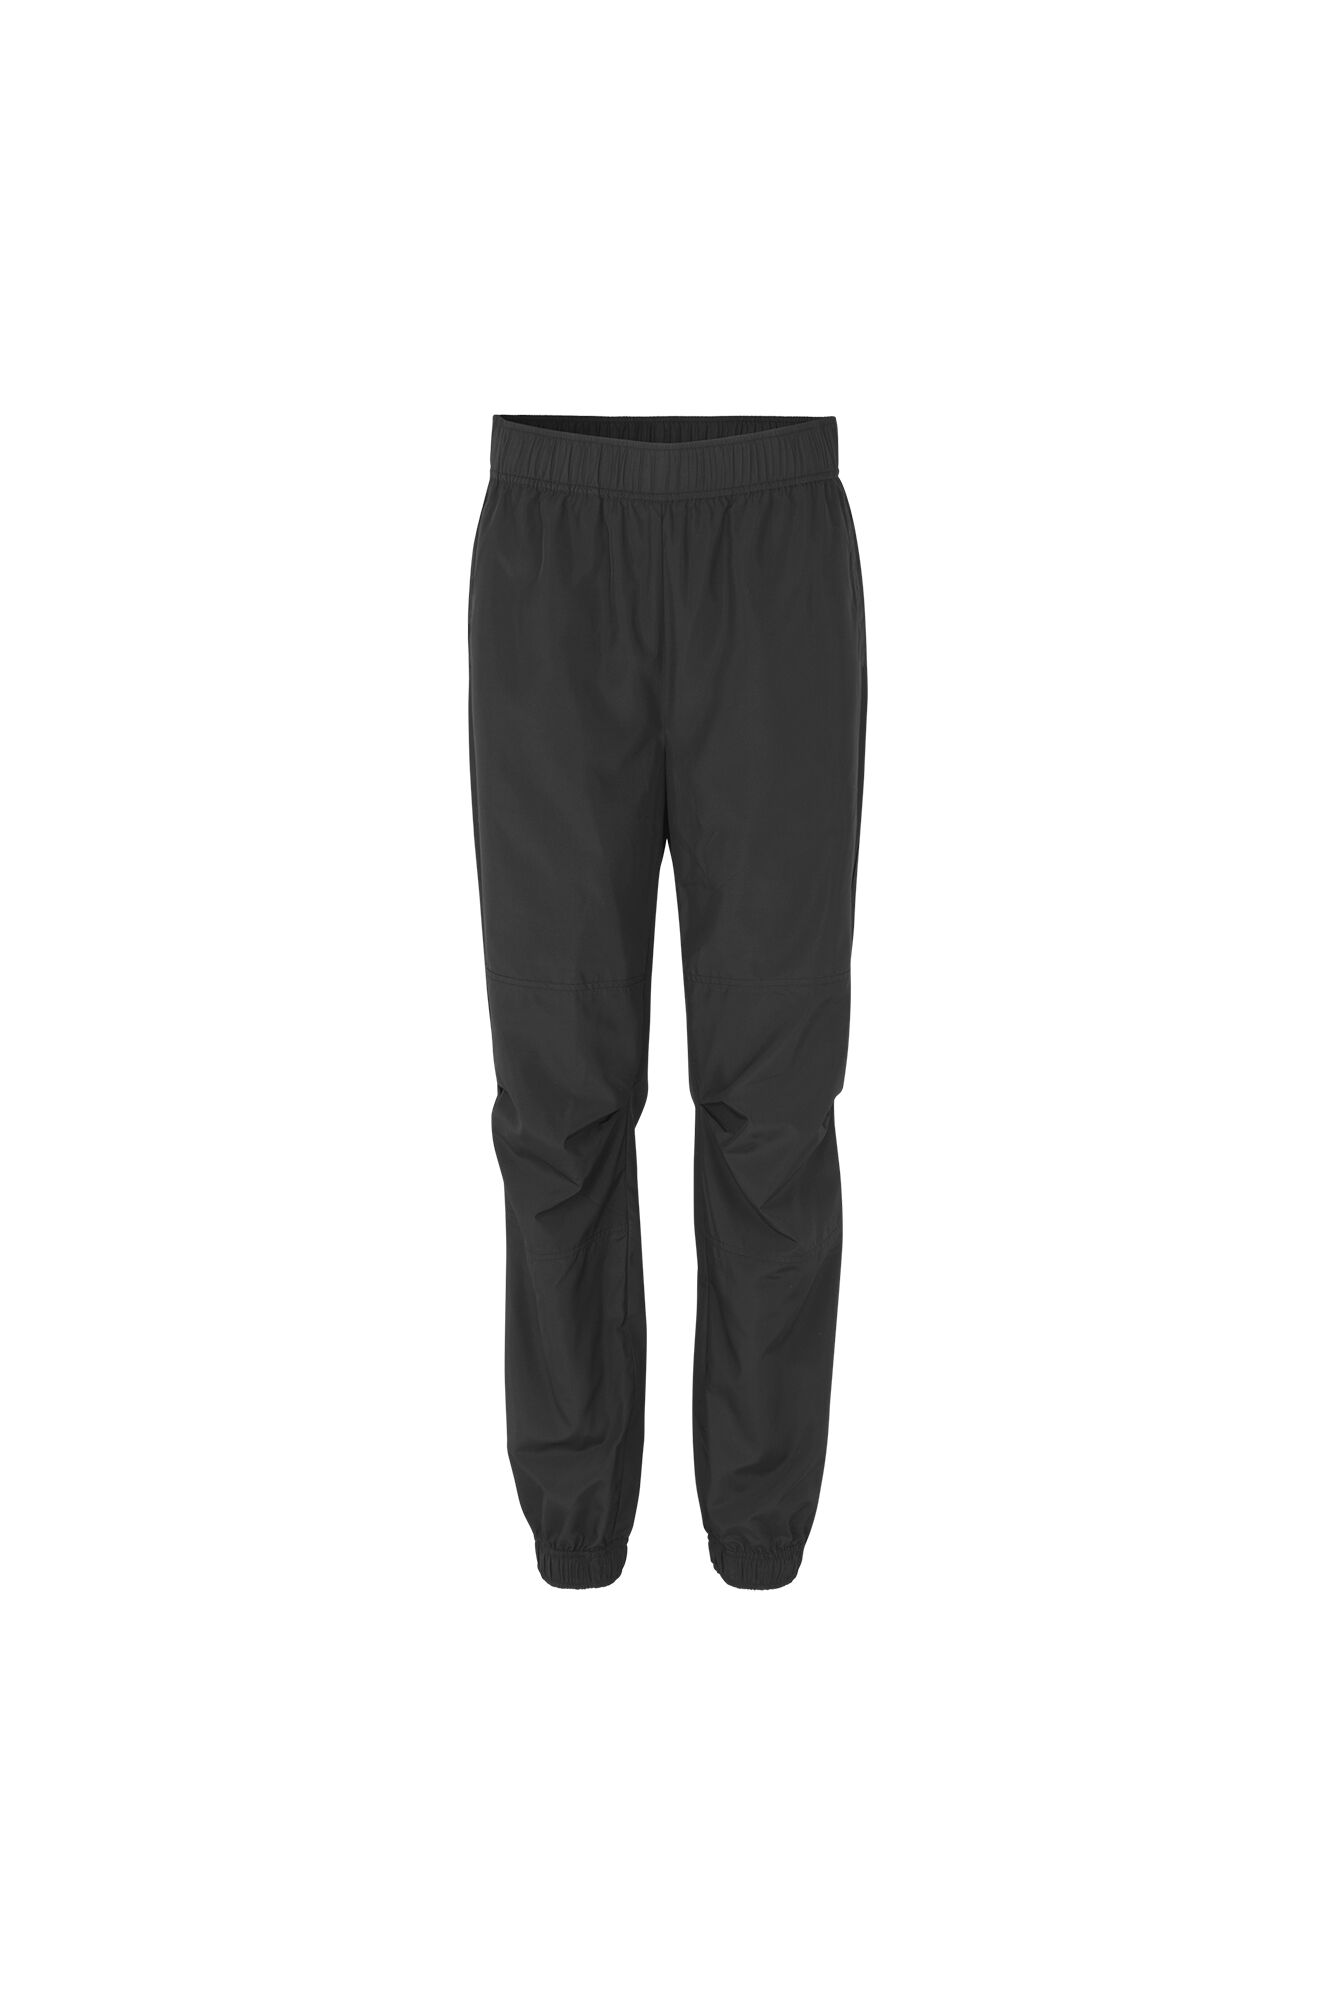 ENBURBANK PANTS 6599